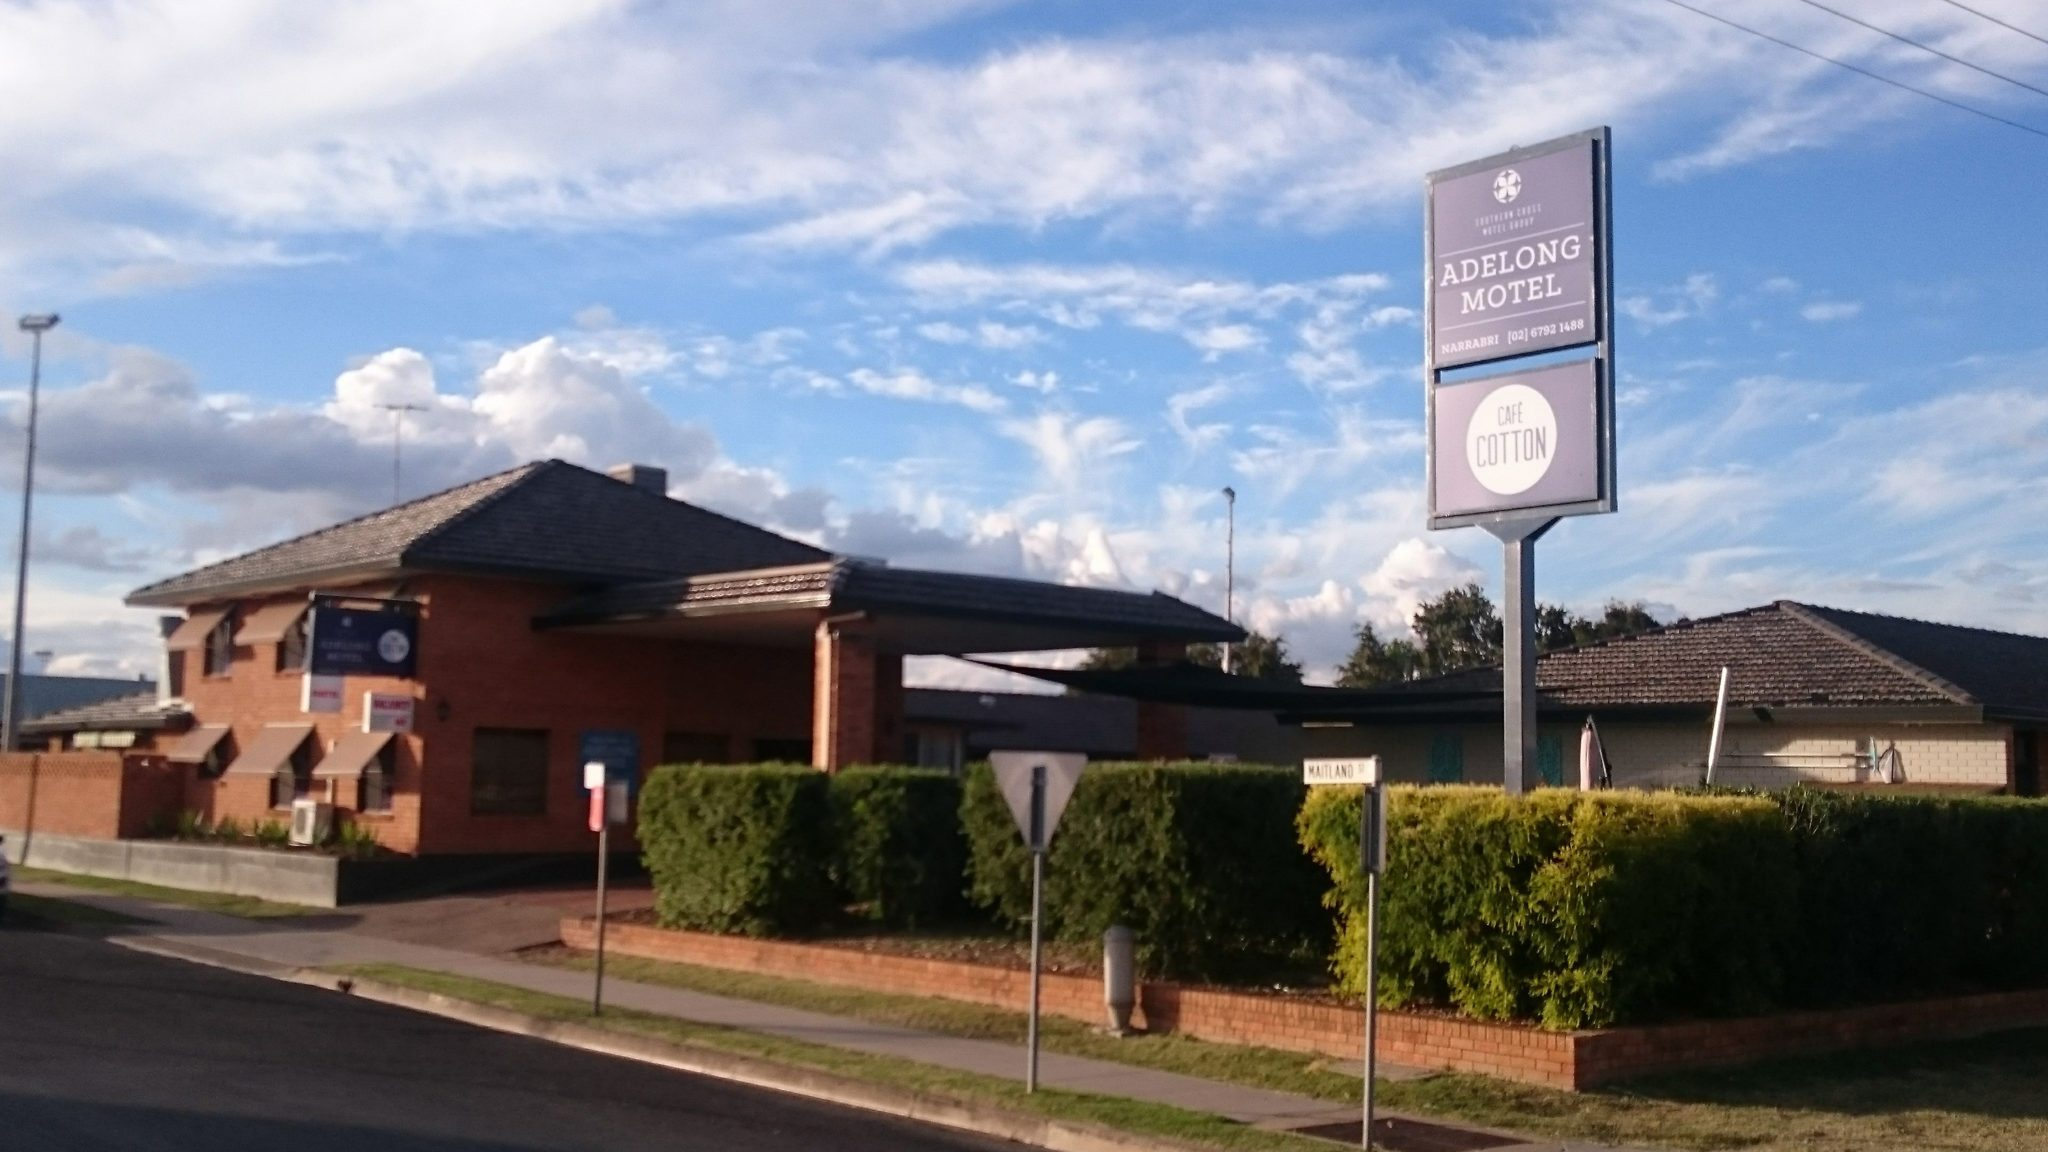 Narrabri Accommodation, the Adelong Motel, seen from the road